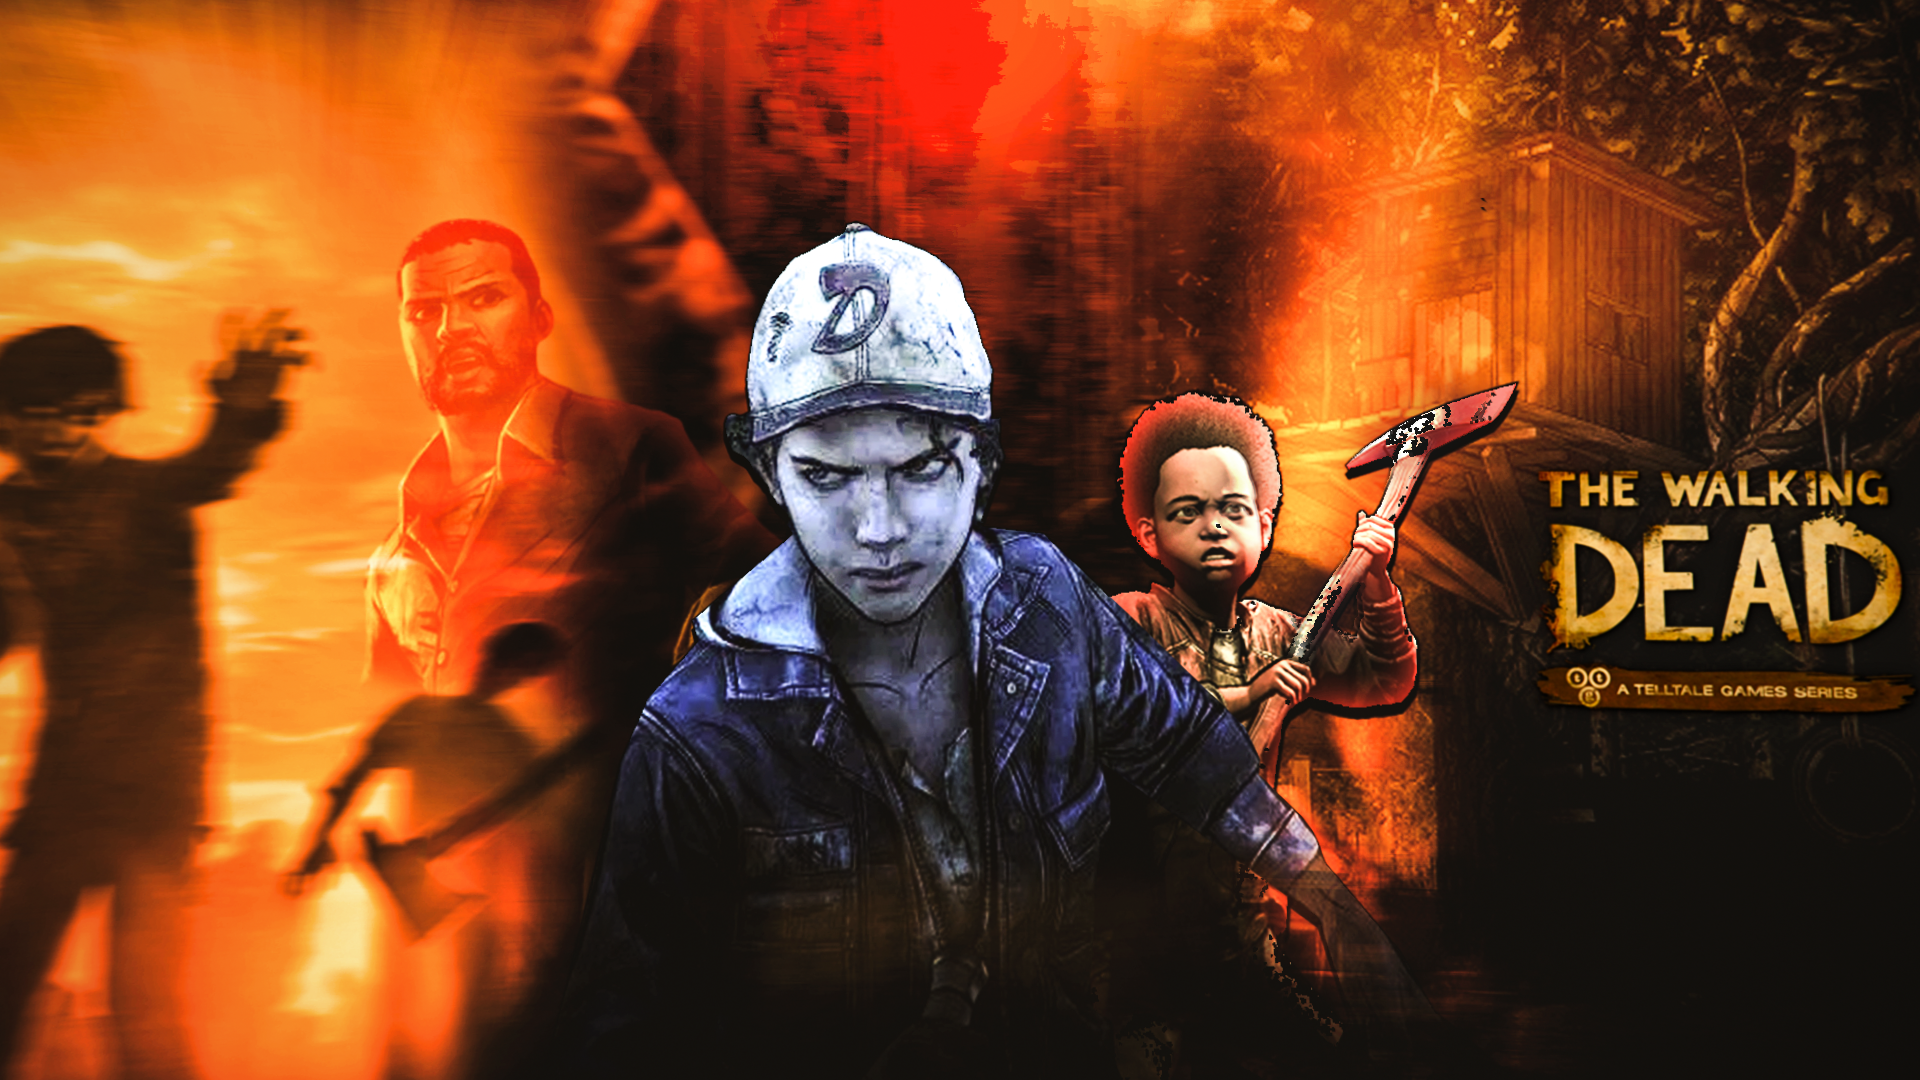 The Walking Dead Telltale Games Wallpaper By Jeanluiseditions On